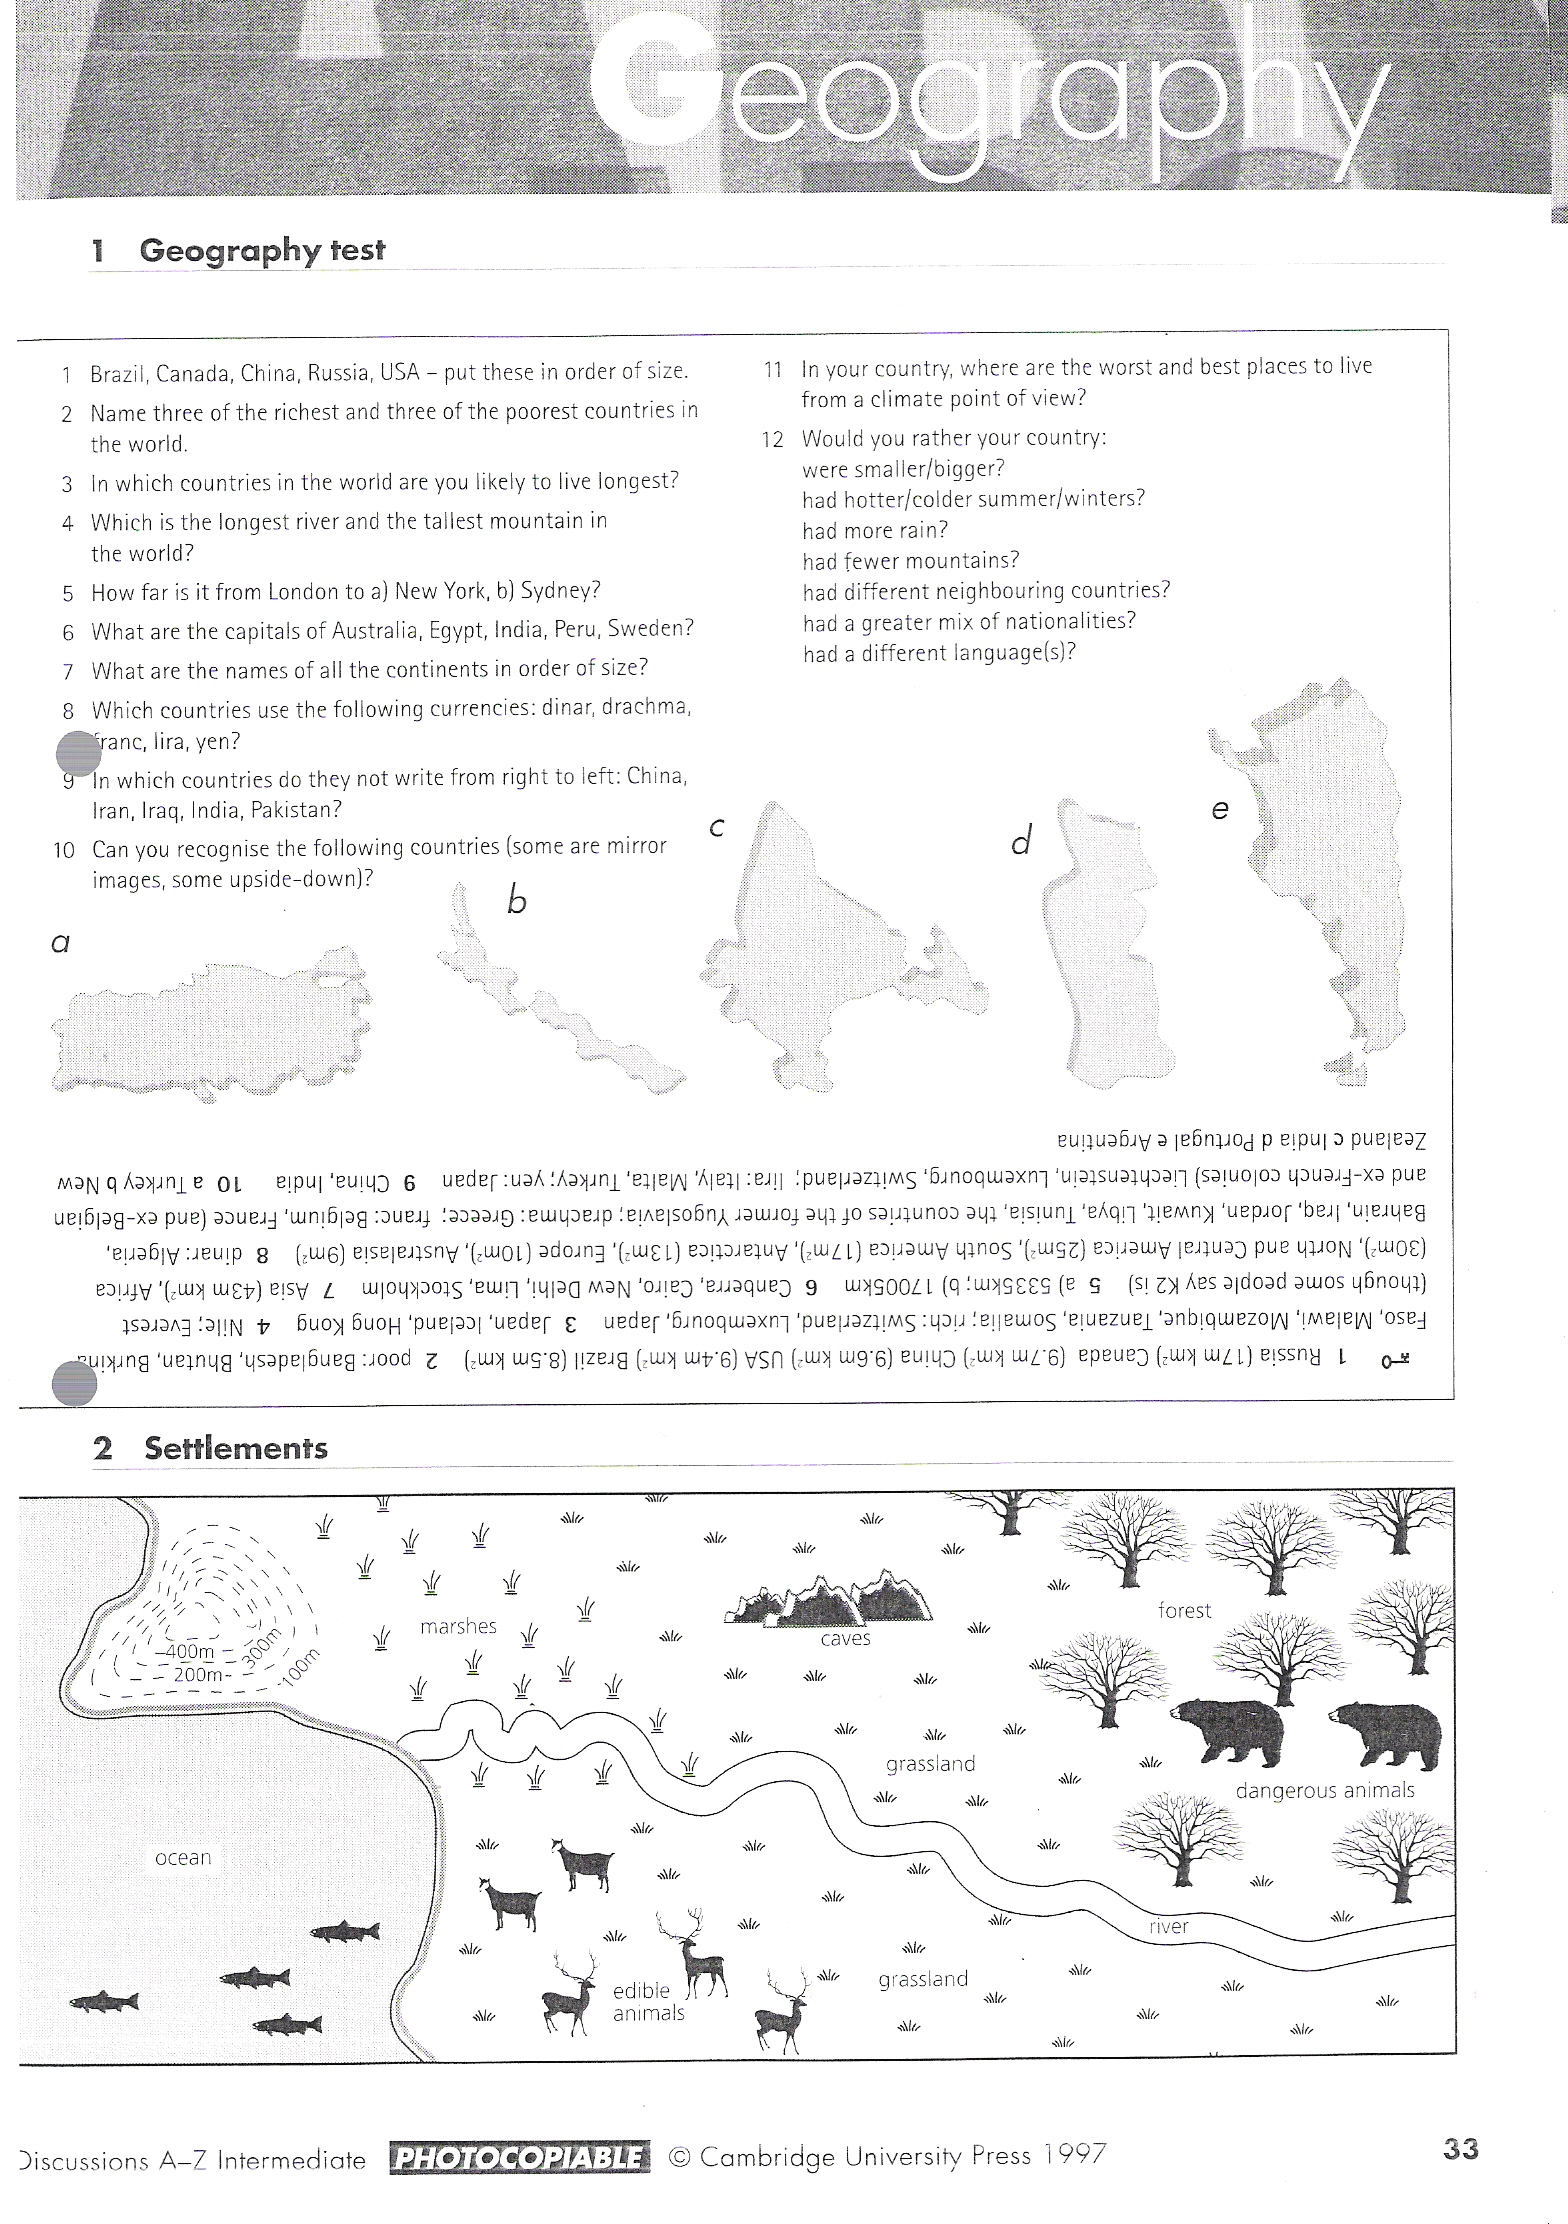 Worksheets Glencoe World Geography Worksheets glencoe world geography worksheets free library mcgraw hill worksheet answers templates and